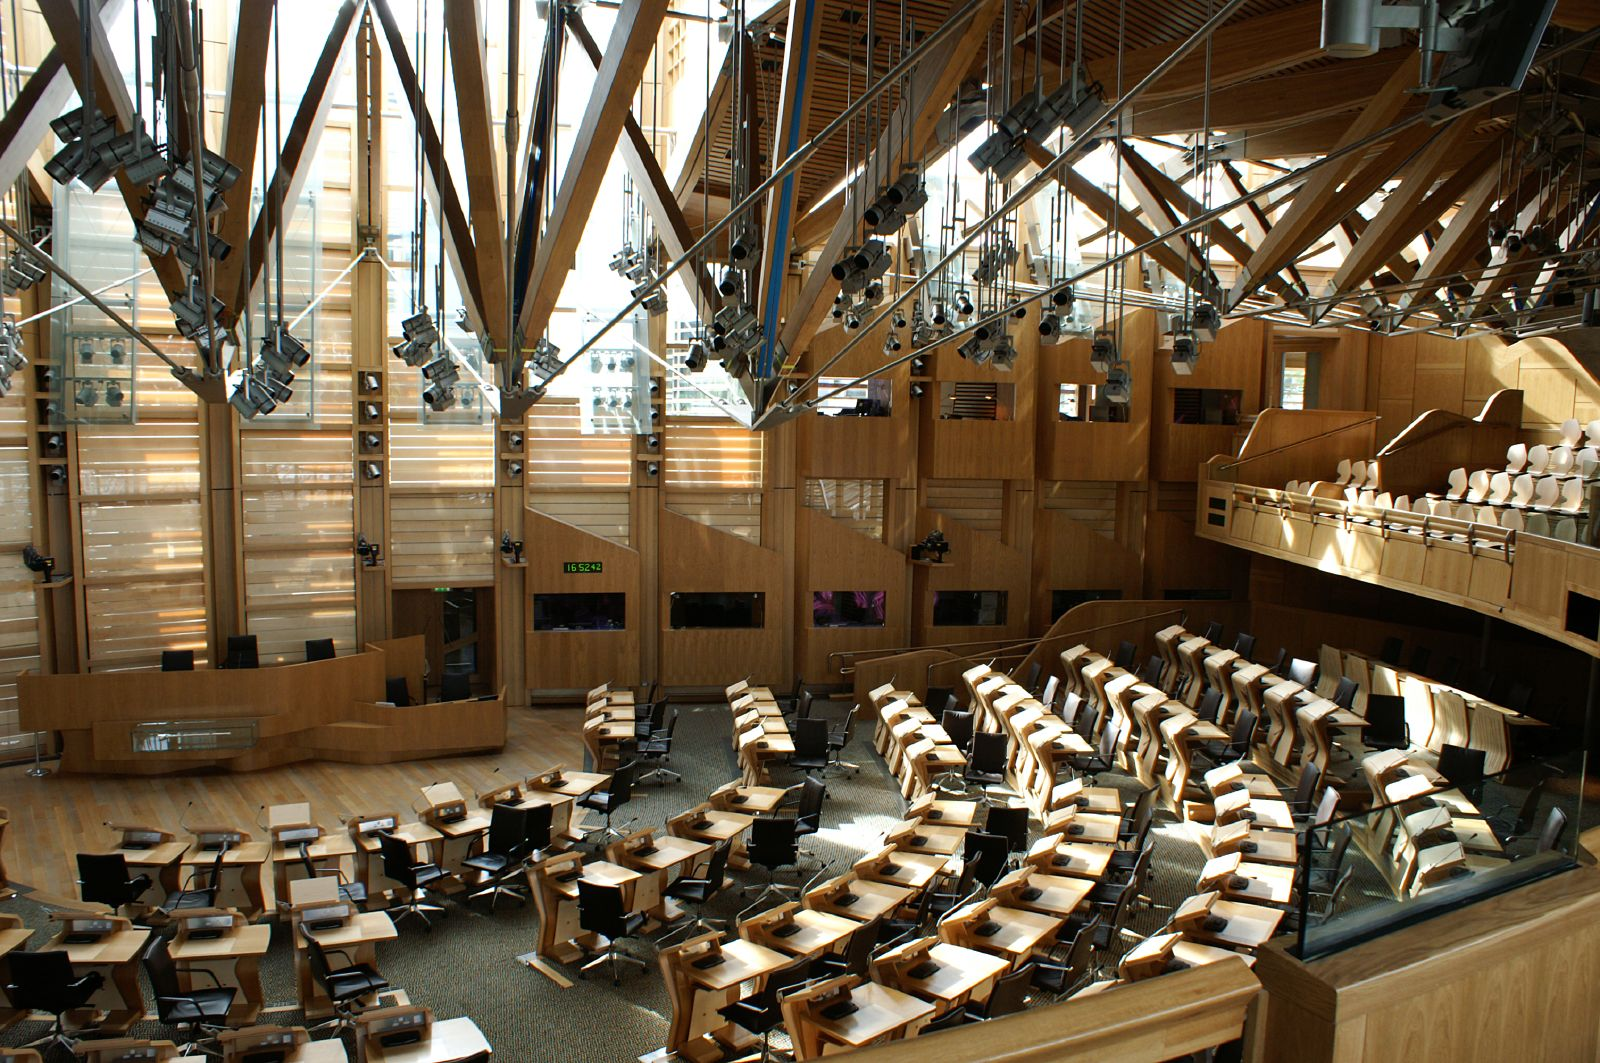 Scottish Parliament ©2006 Martin Pettitt